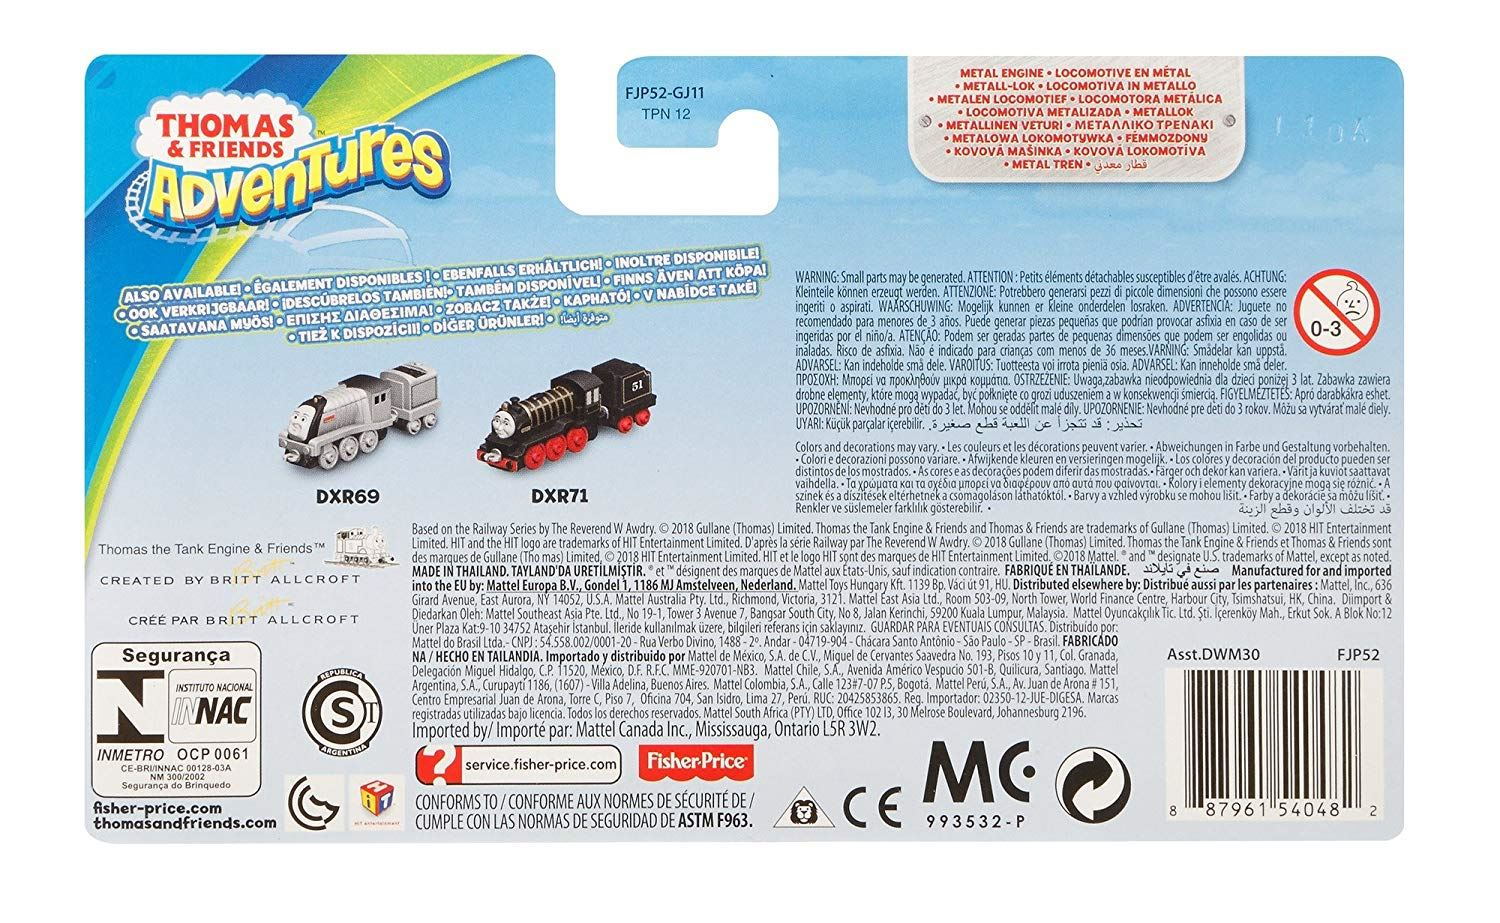 Thomas-amp-Friends-Adventures-Ferdinand-lexi-Shane-Dash-Huge-Bill-Trains Indexbild 42